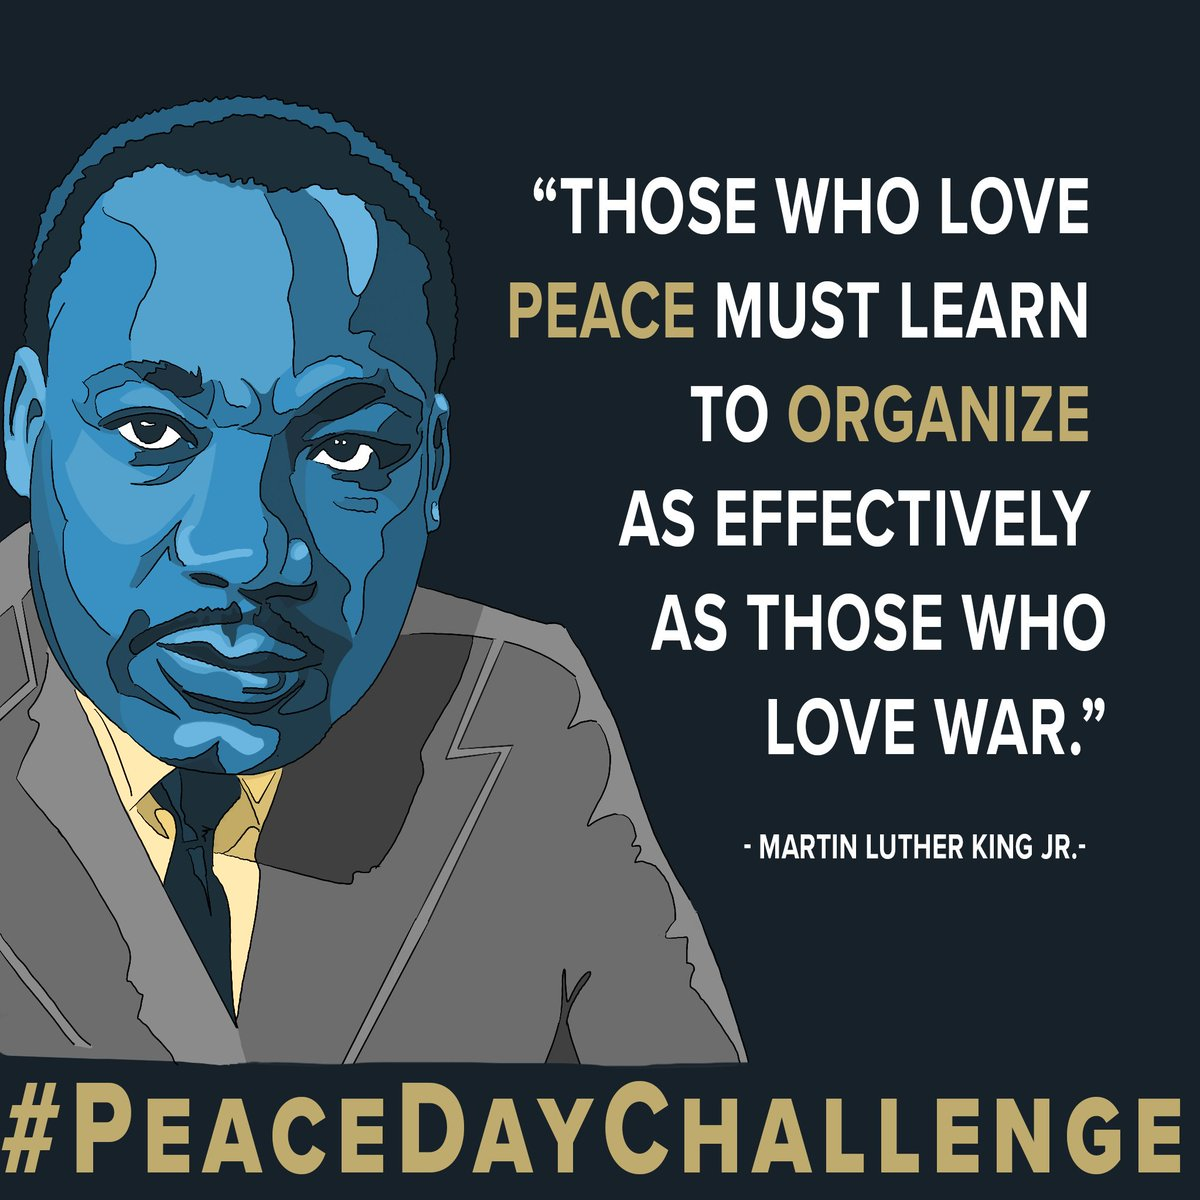 11 days until #PeaceDay, have you started your #PeaceDayChallenge? Share photos or short videos to inspire others! https://t.co/MUggCsHwxB